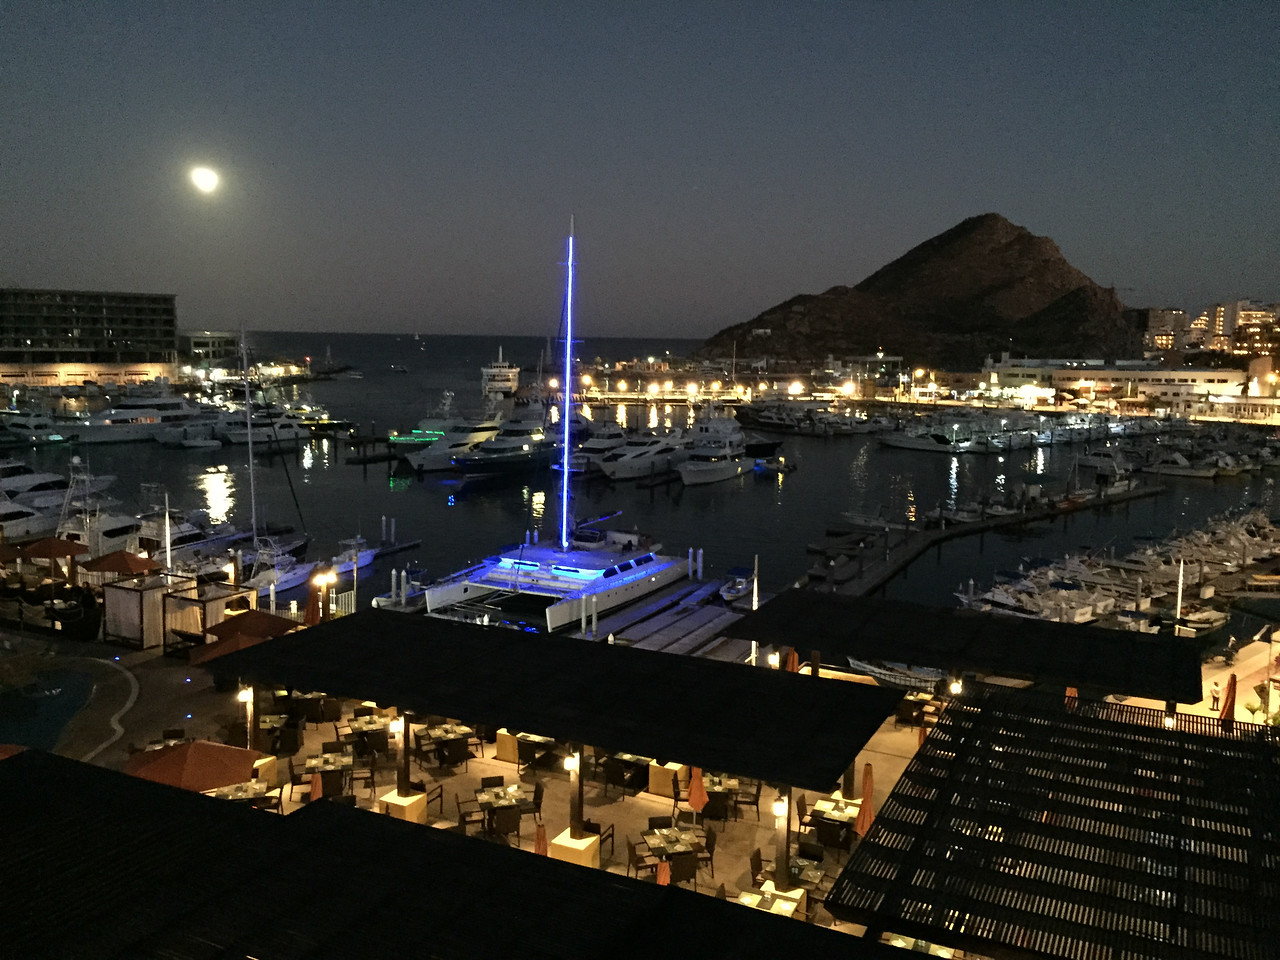 Late evening view from my balcony at Wyndham Cabo San Lucas Resort - January 2015